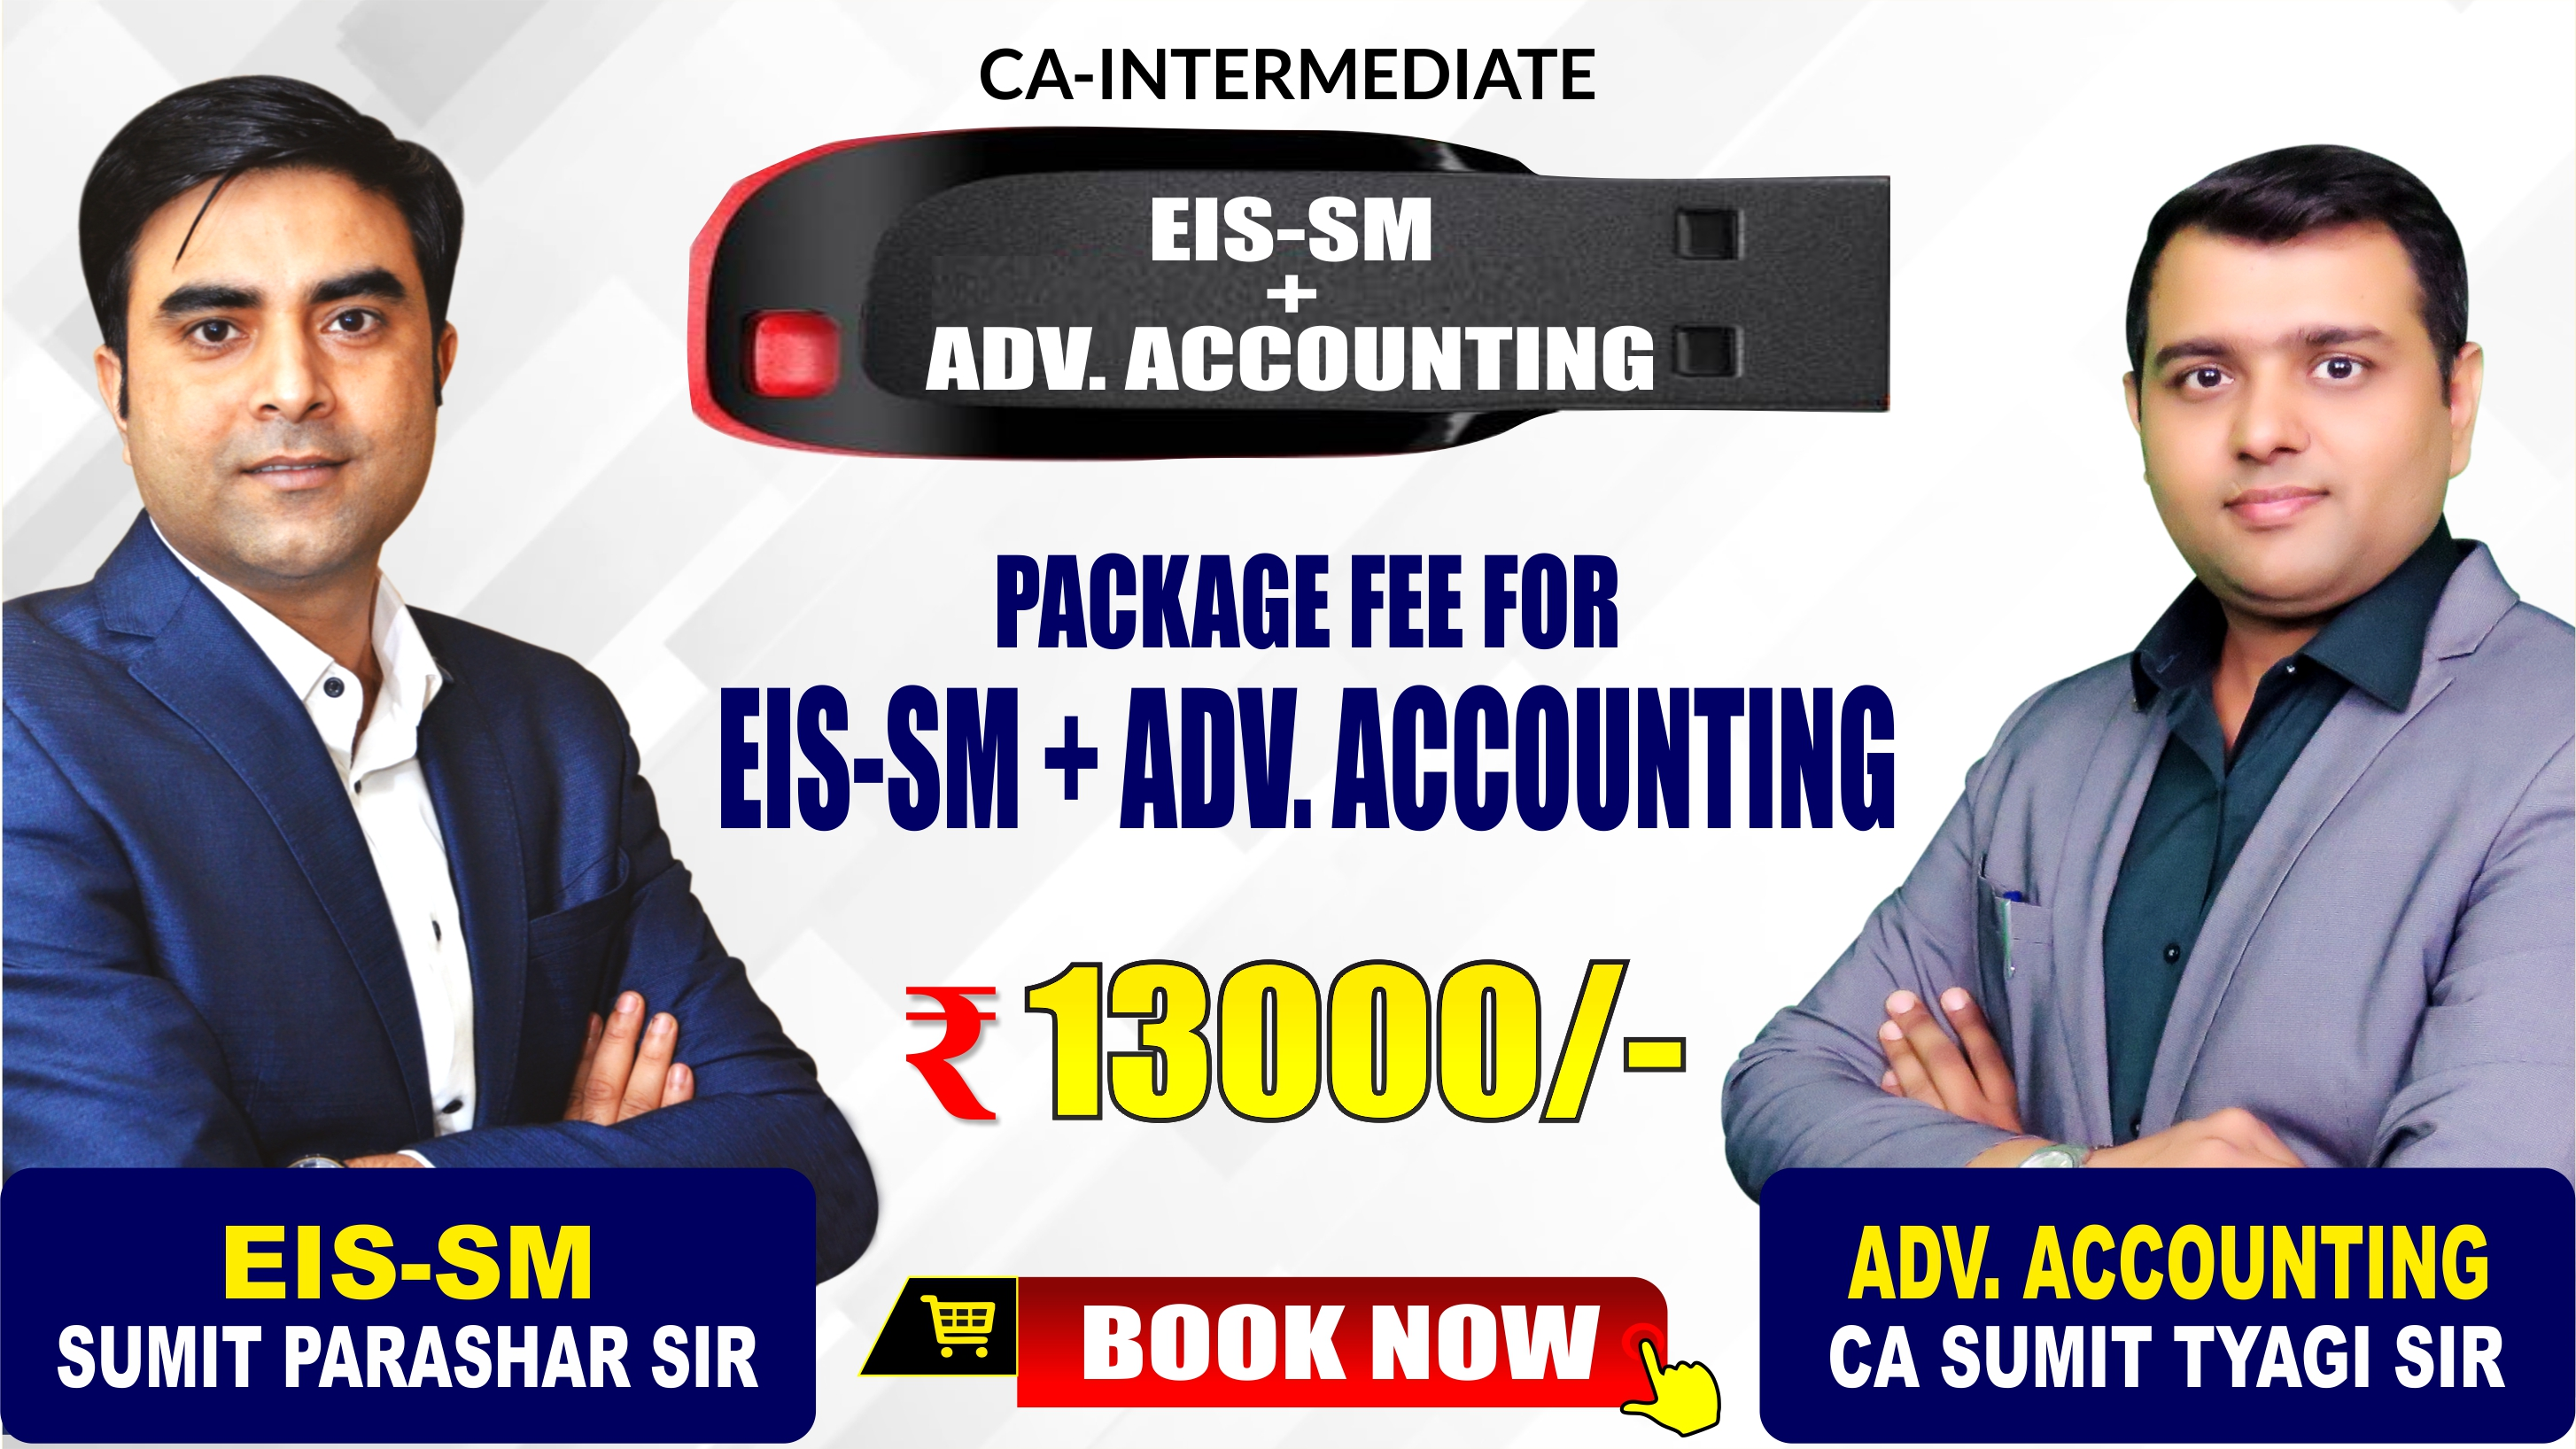 CA-Inter EIS-SM and ADV. ACCOUNTING Combo Pendrive Classes by Sumit Parashar Sir and CA Sumit Tyagi Sir - Full HD Video Lecture + HQ Sound